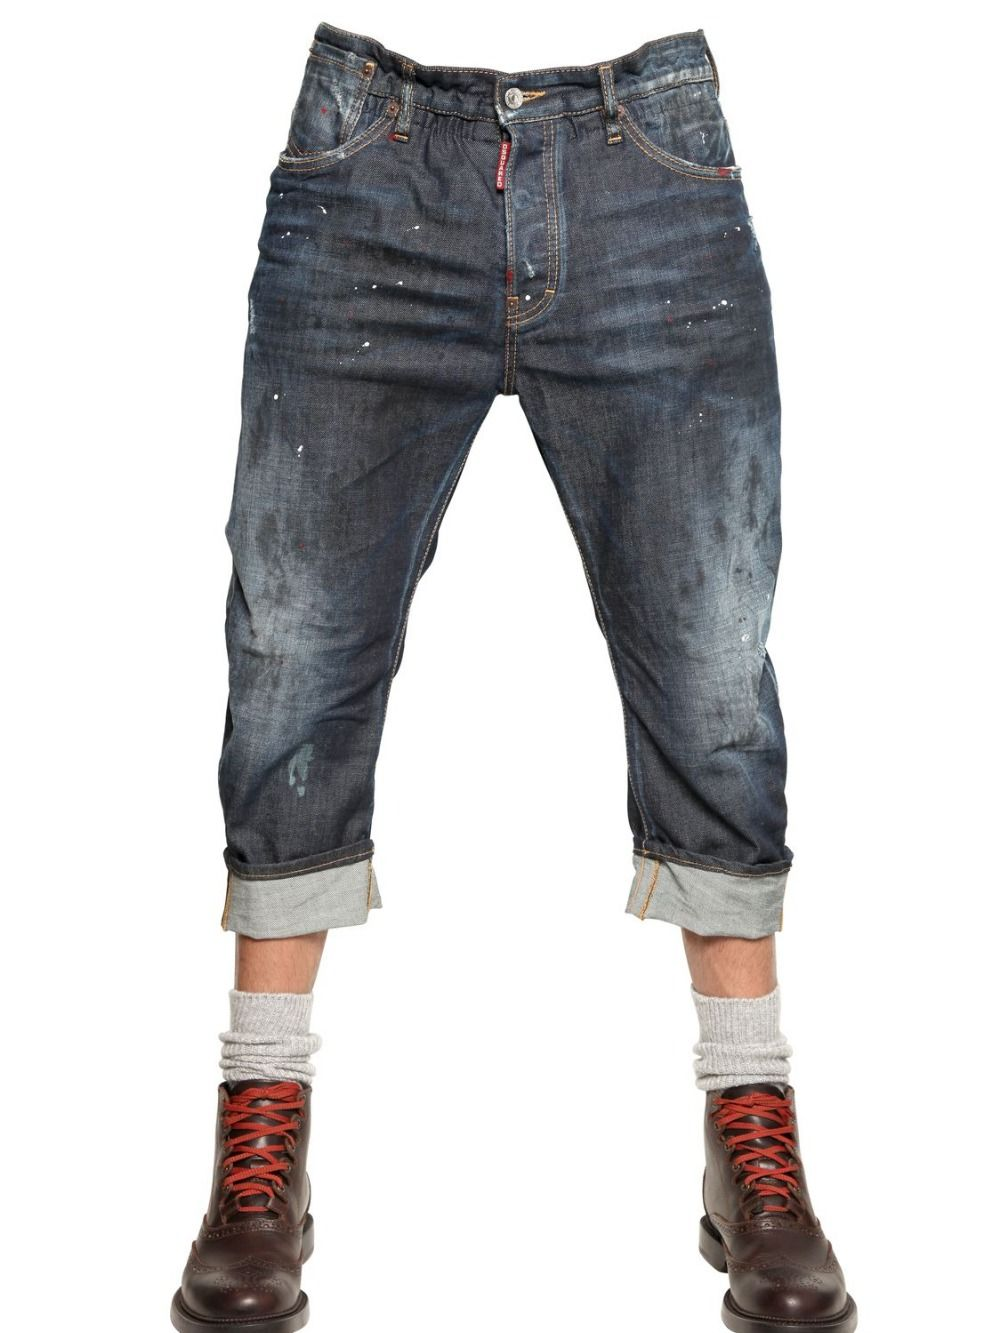 Latest Design Jeans Pants New Pattern Jeans Pants New Style Jeans